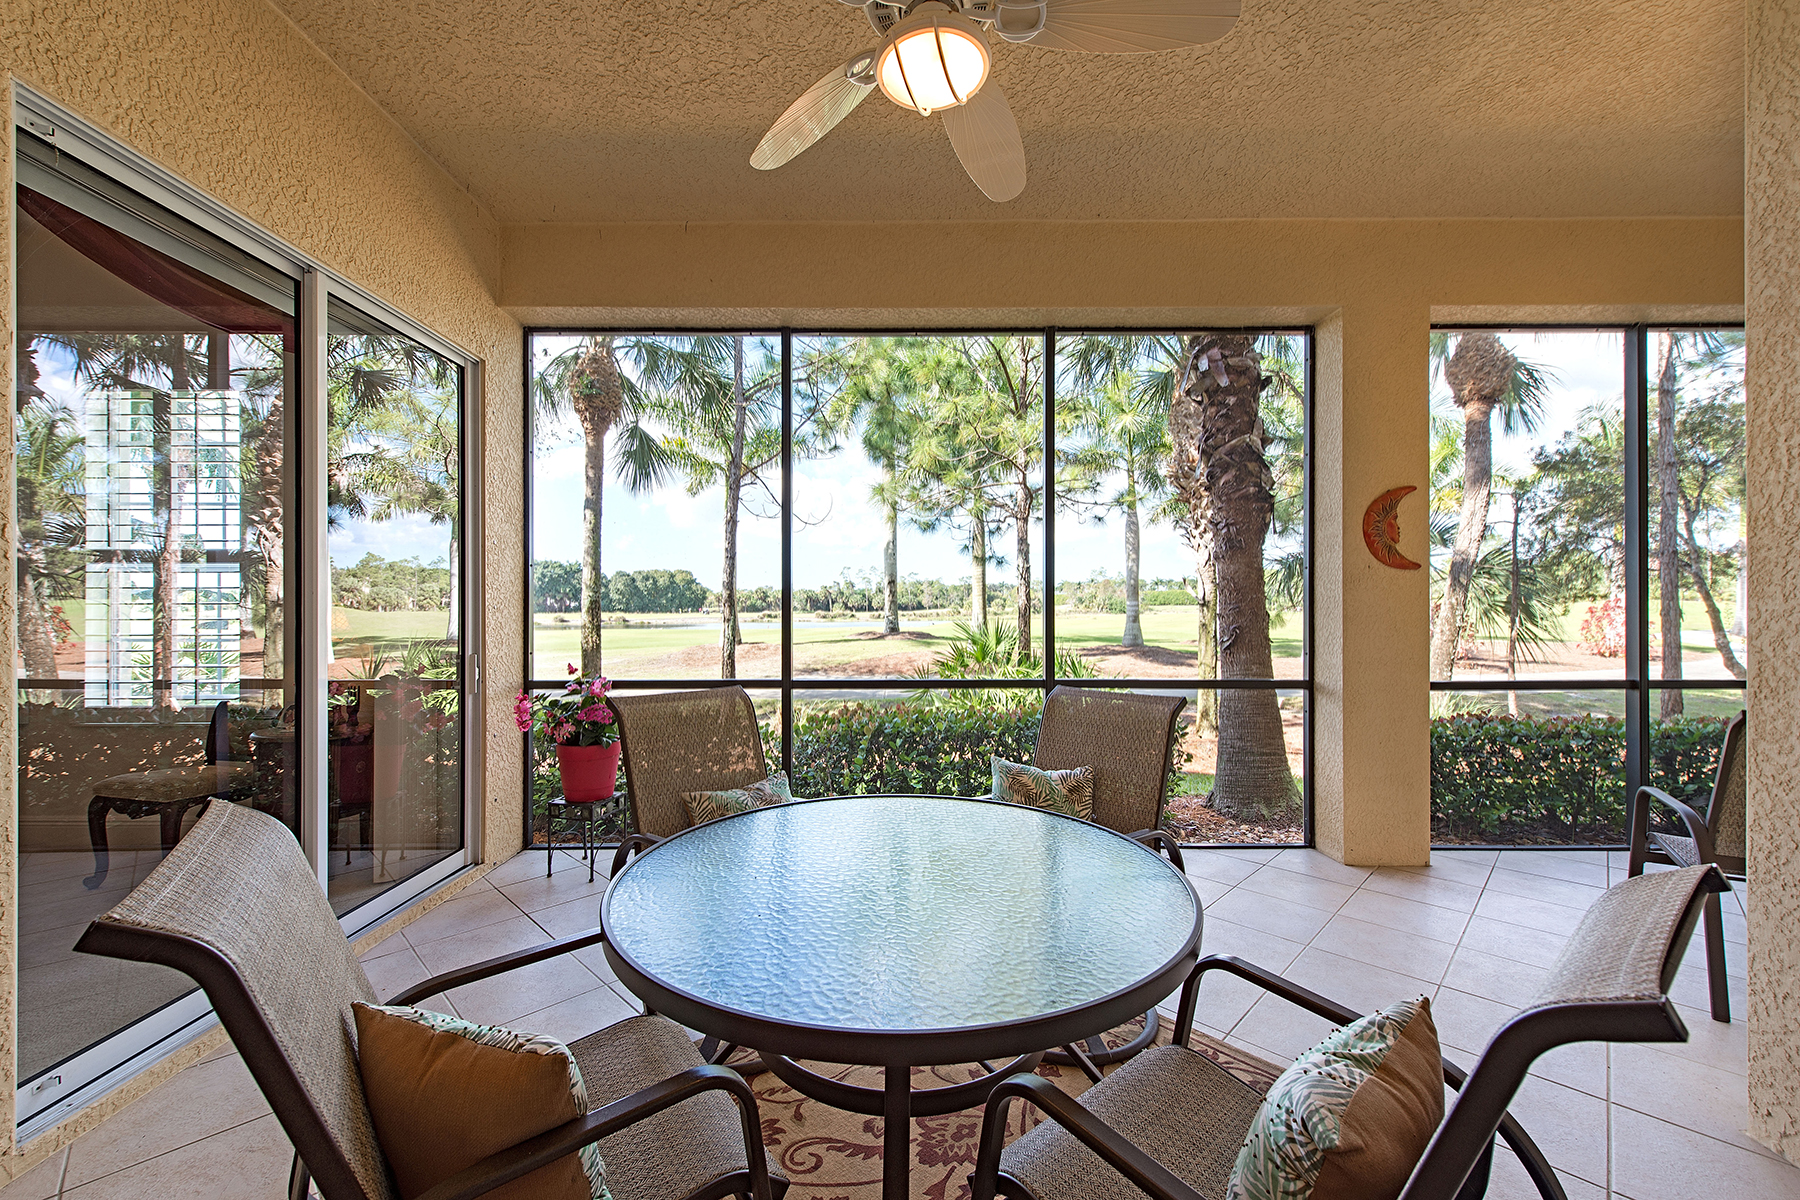 Condominium for Sale at FIDDLERS CREEK 9067 Cherry Oaks Trl 102 Naples, Florida, 34114 United States